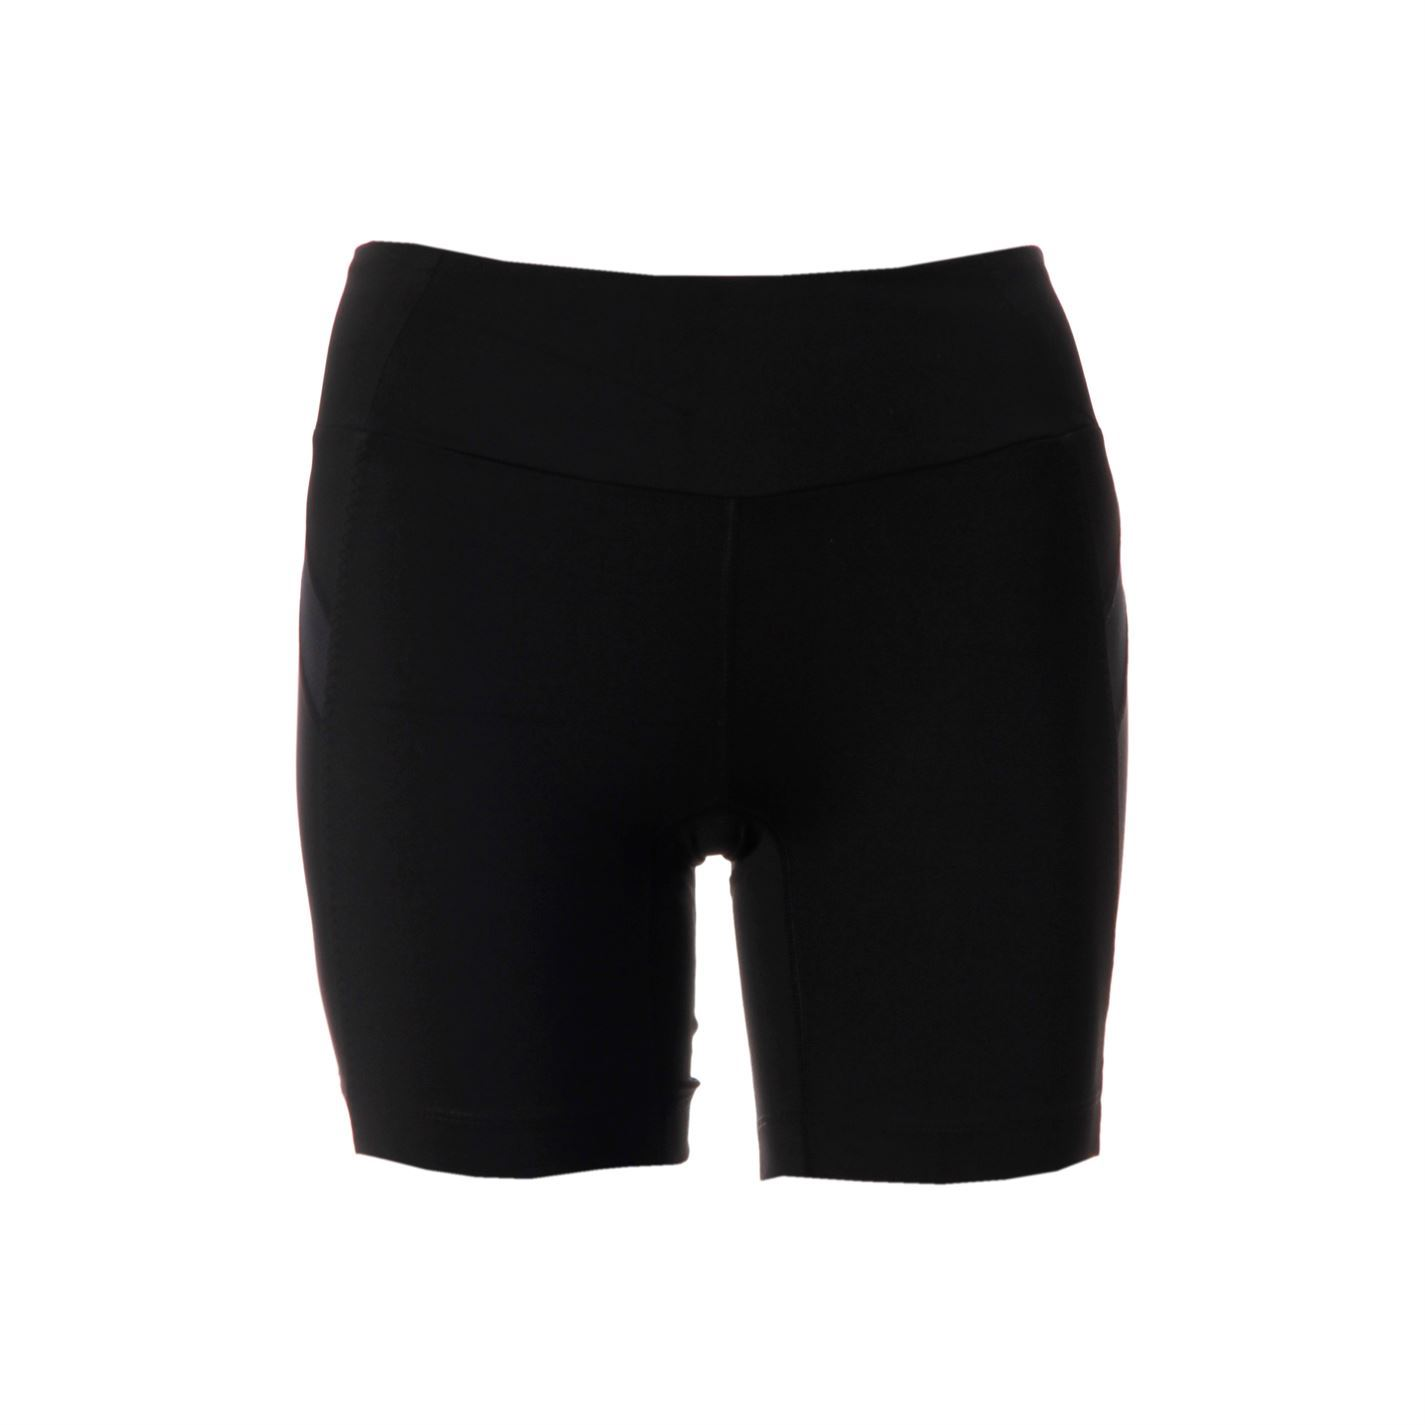 Details about Gore Womens Tights sho Air Ladies Sports Training Tight Shorts  Pants Bottoms 48135a62c1c1